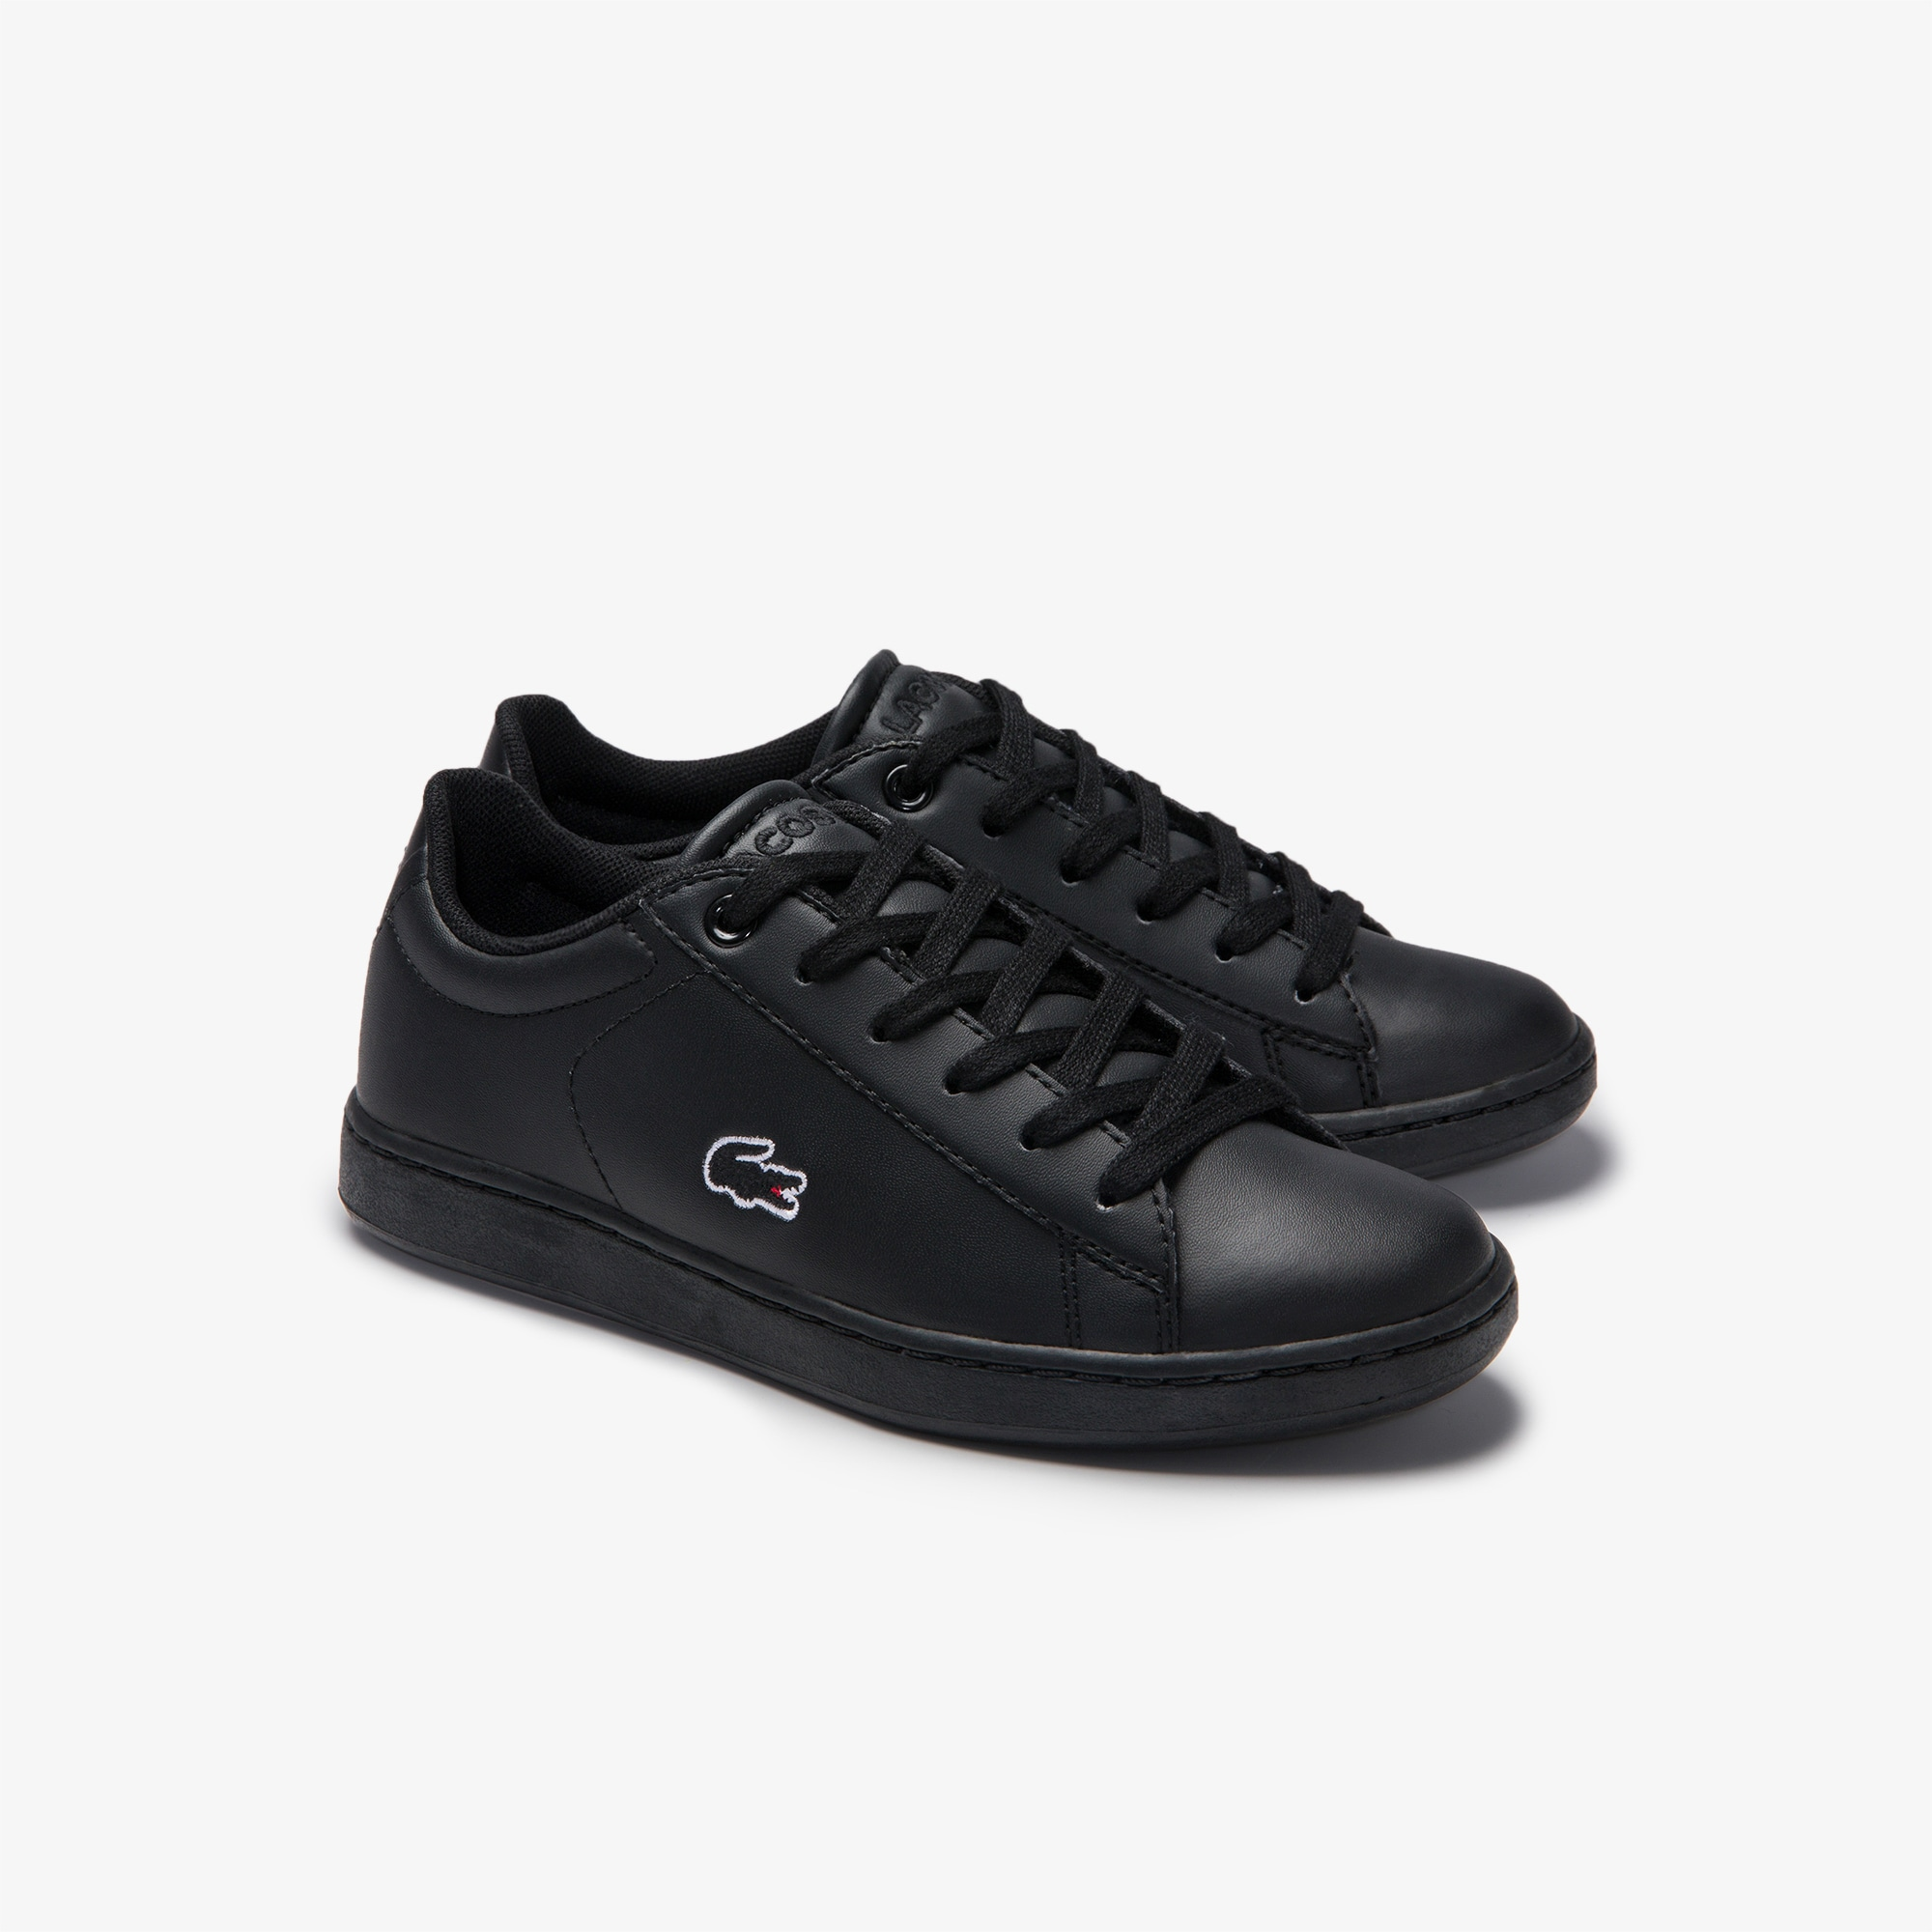 Children's Carnaby Evo Lace-up Mesh-lined Synthetic Sneakers